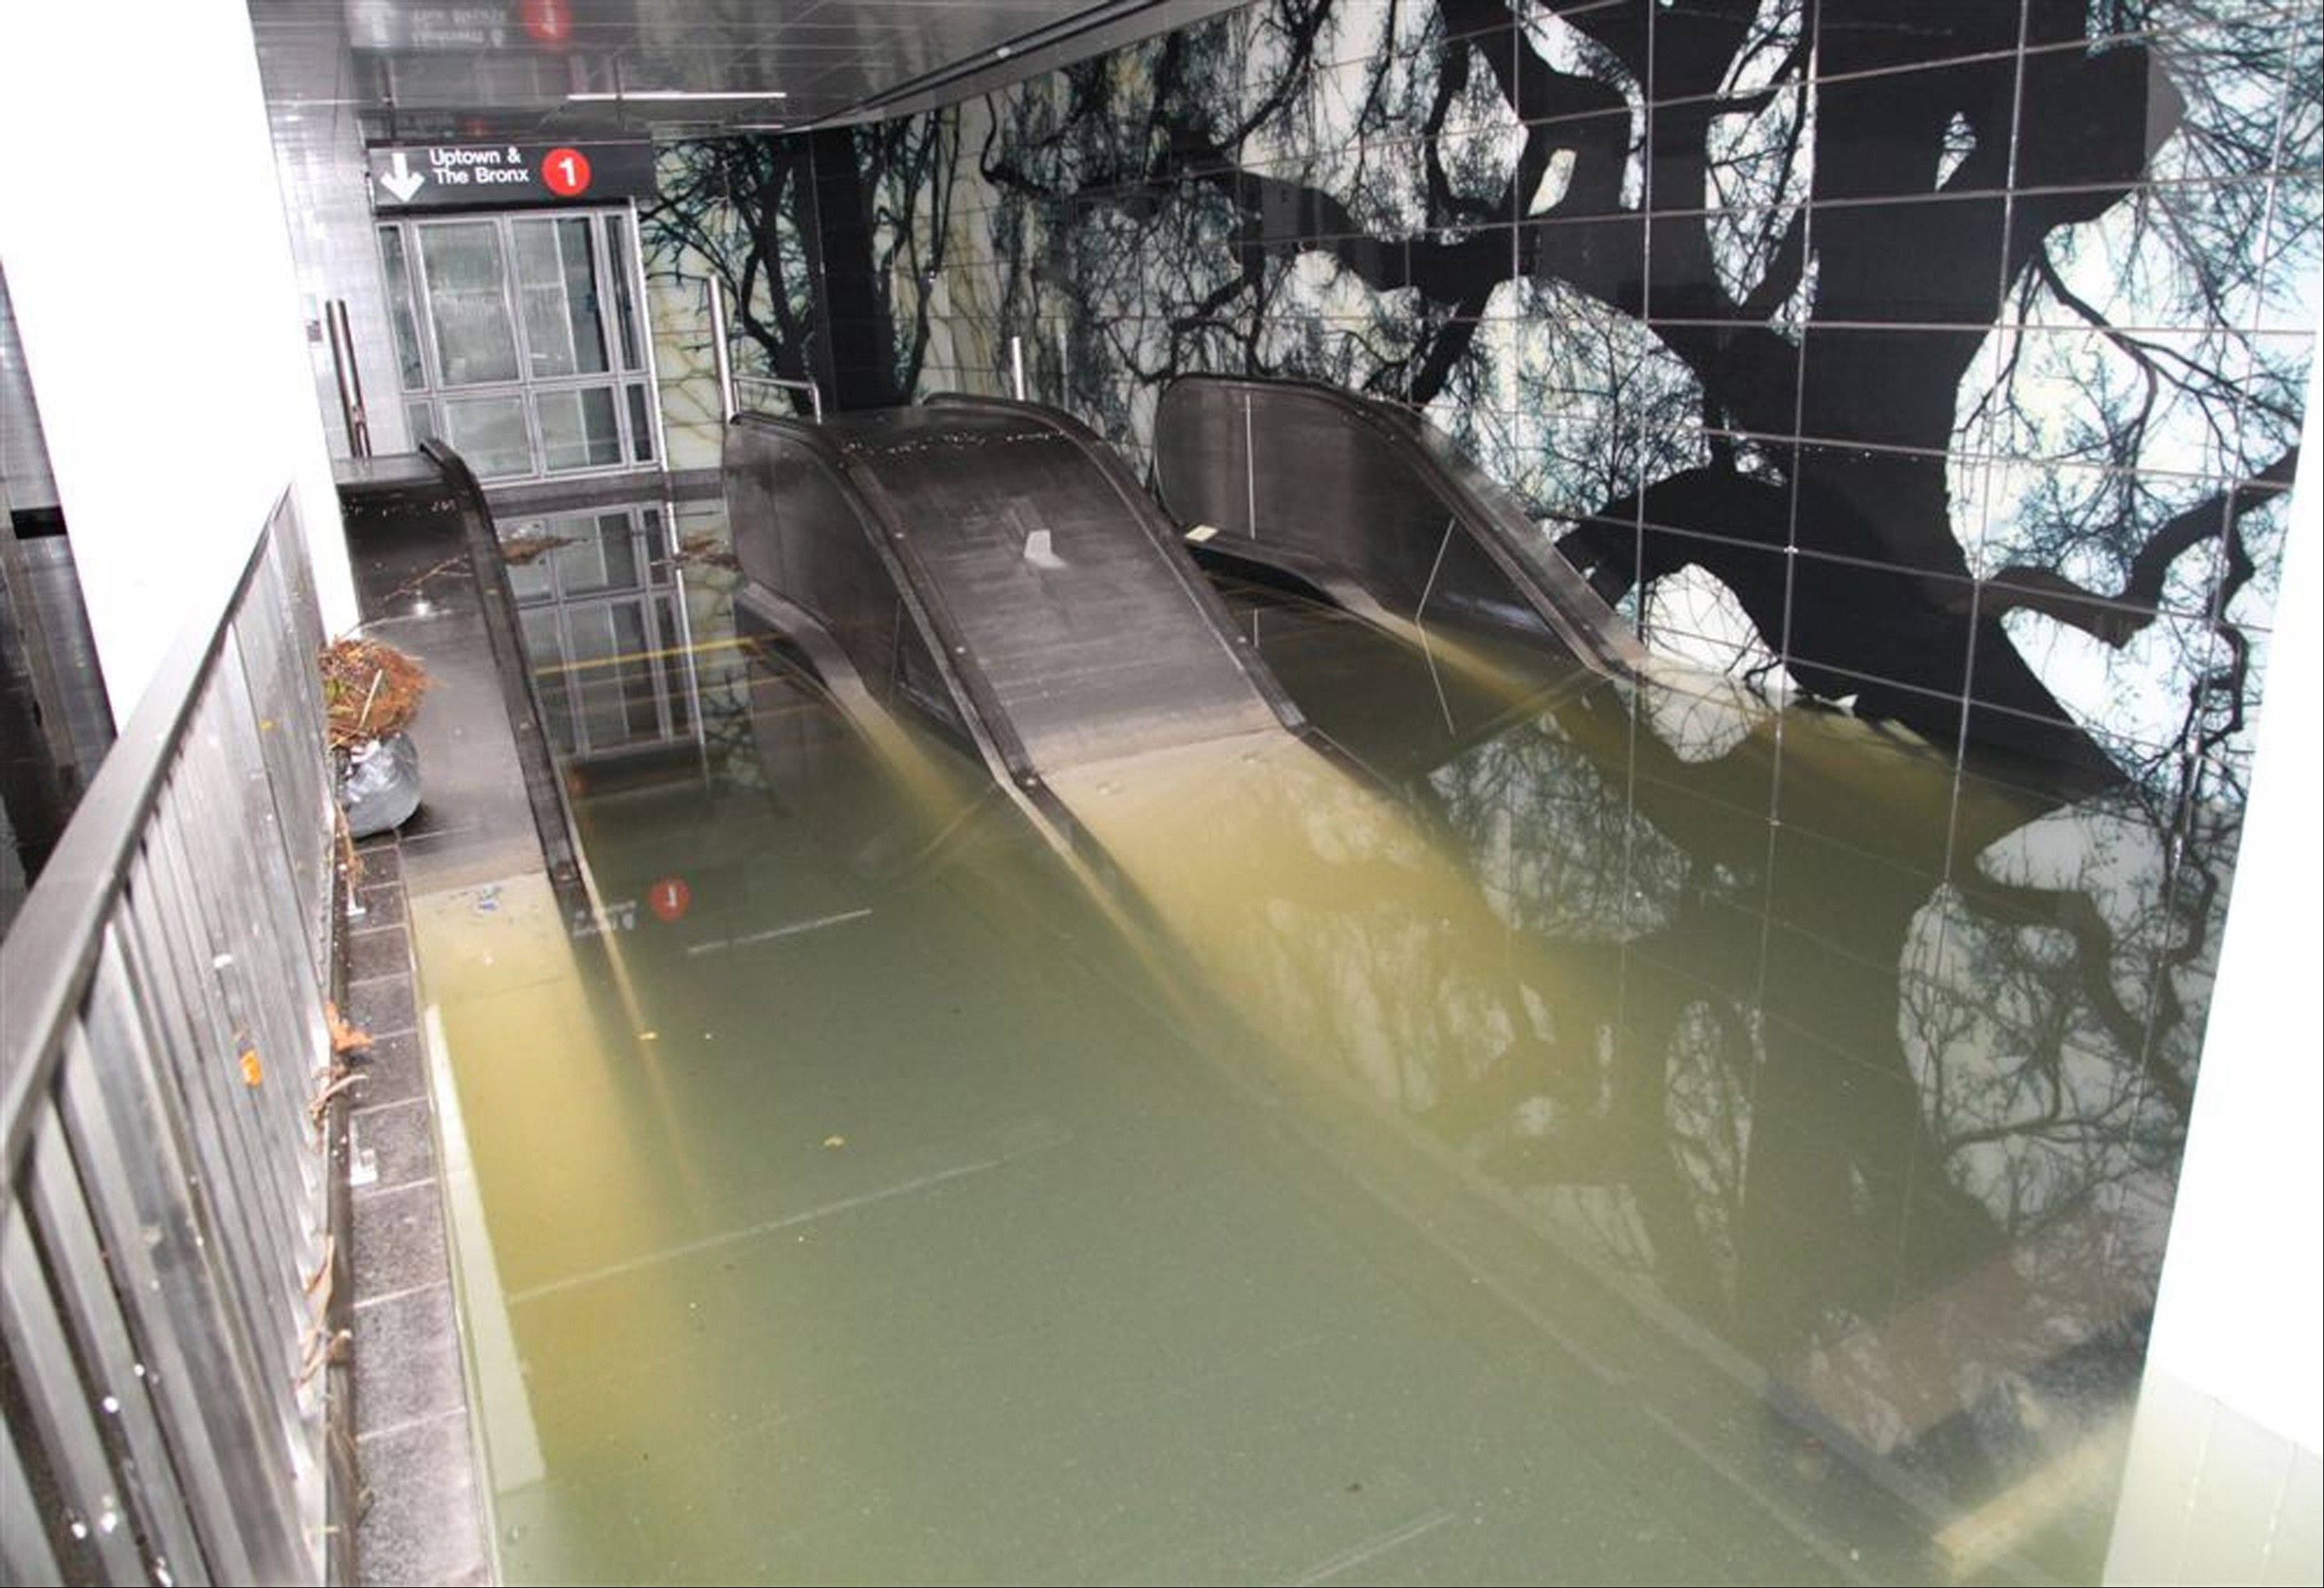 New York�s Metropolitan Transportation Authority, floodwaters rise above the top stair of an escalator in New York City�s South Ferry station in the wake of Superstorm Sandy.